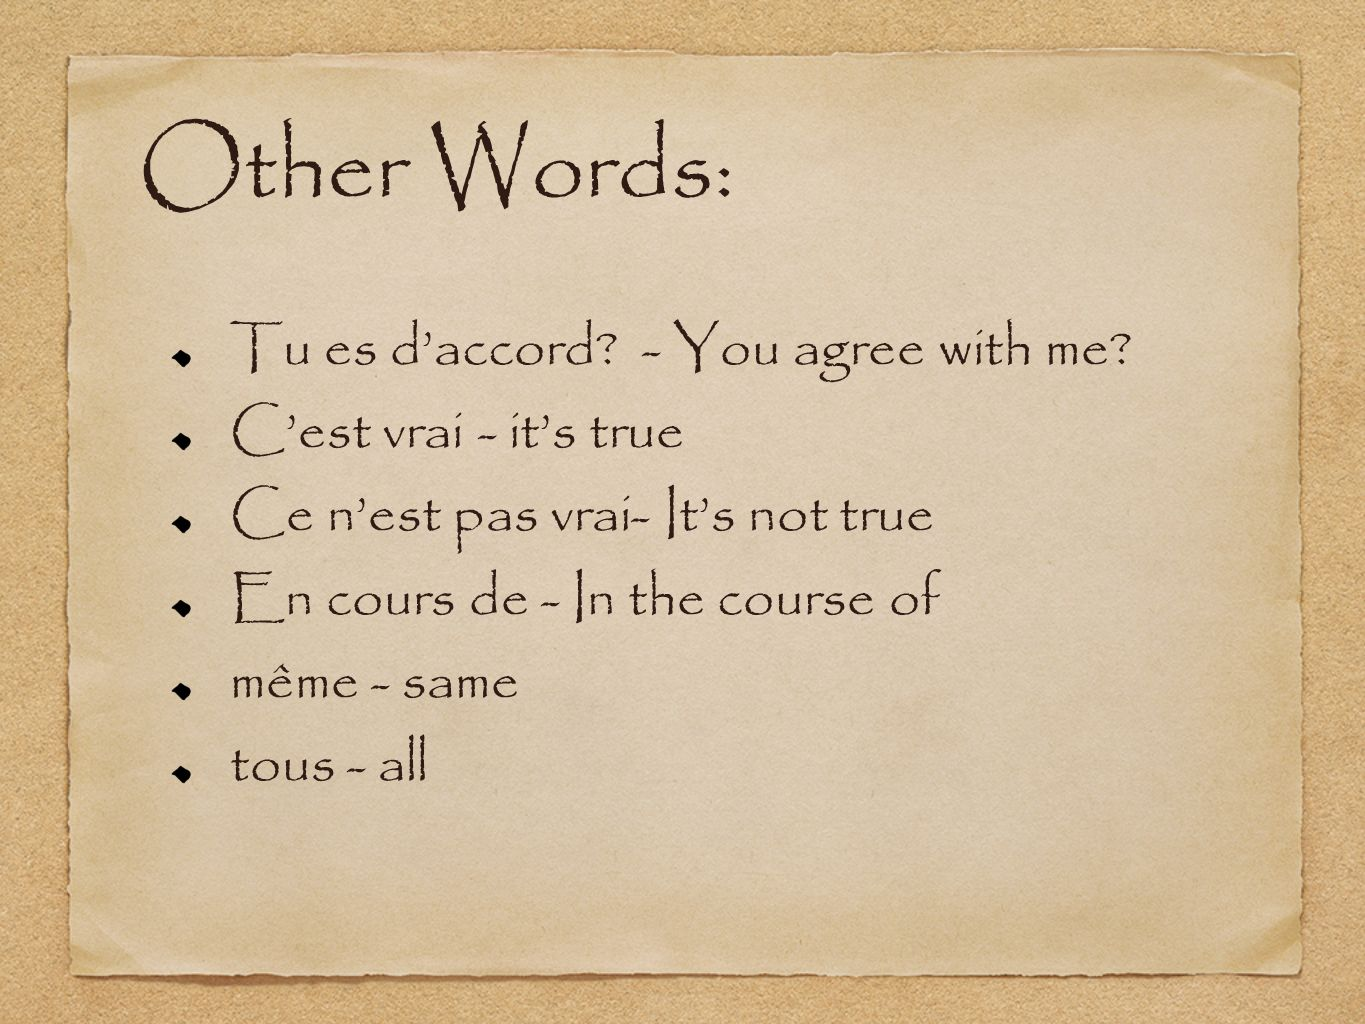 Other Words: Tu es daccord. - You agree with me.